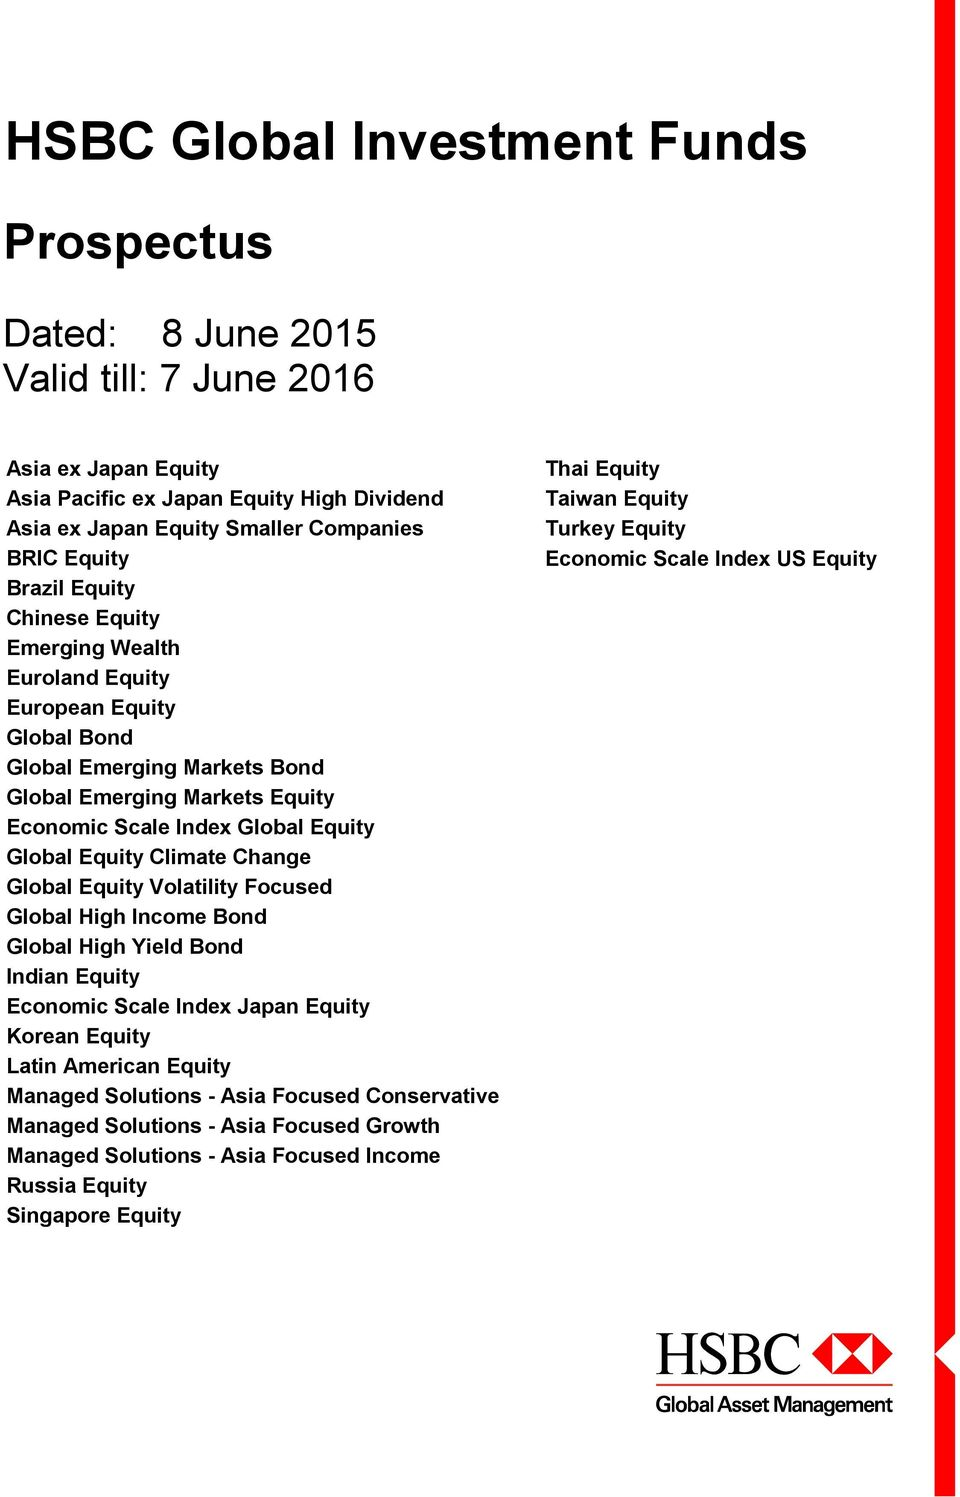 HSBC Global Investment Funds Global Equity Climate